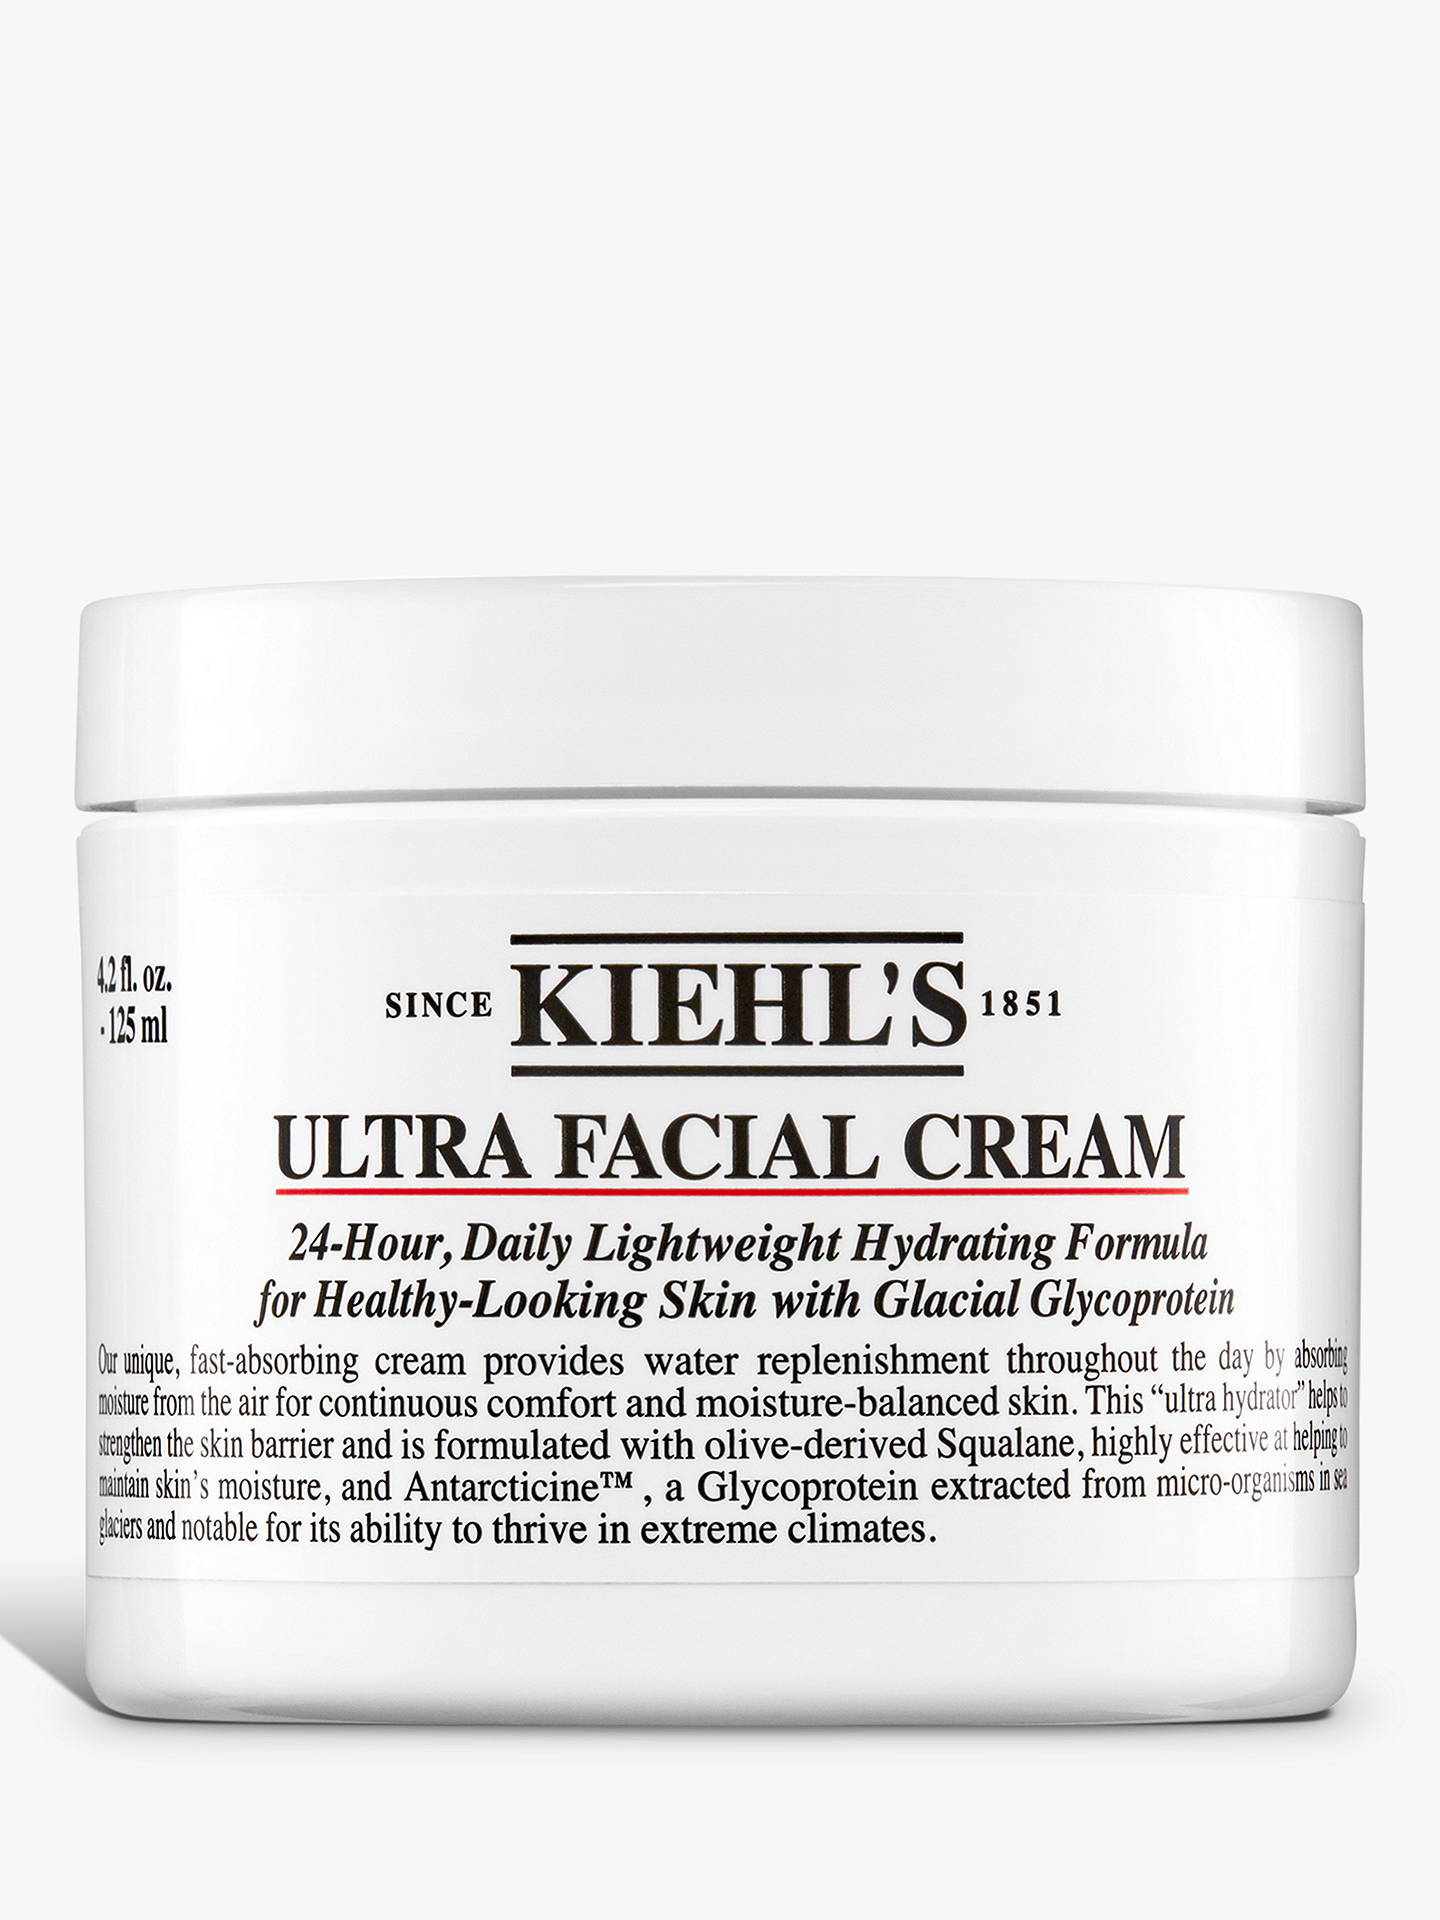 Where to buy kiehls ultra facial cream